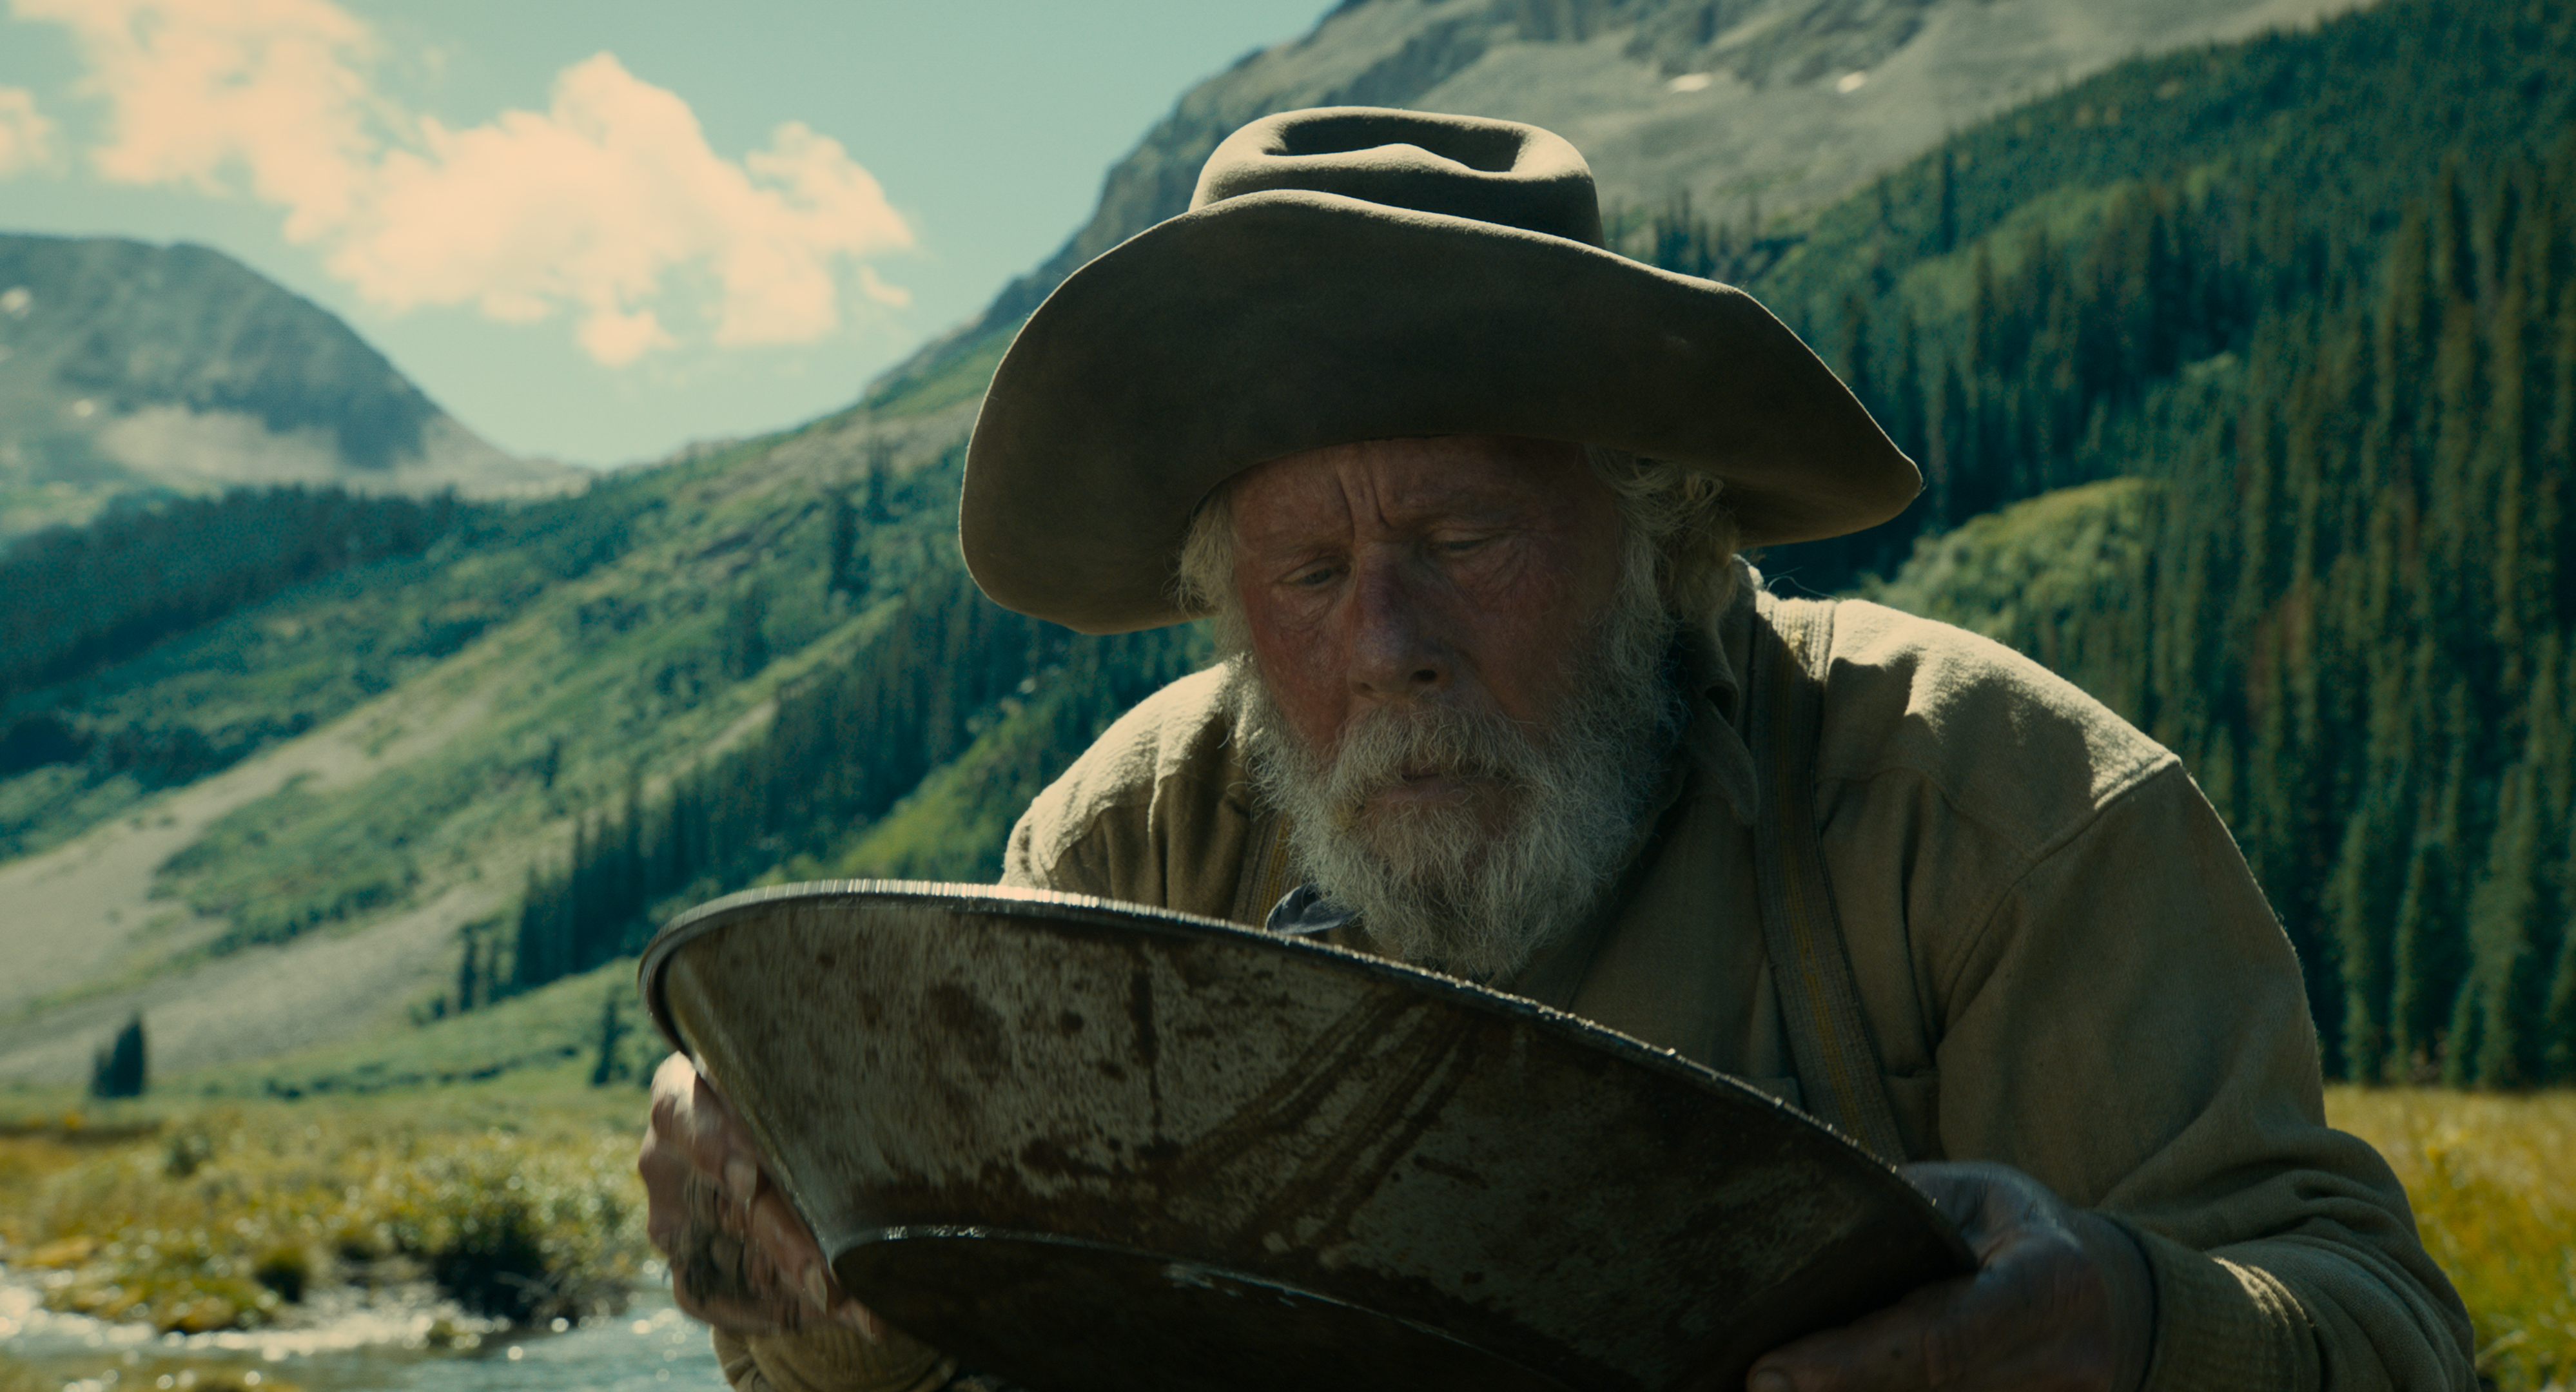 Tom Waits is Prospector in The Ballad of Buster Scruggs, a film by Joel and Ethan Coen.